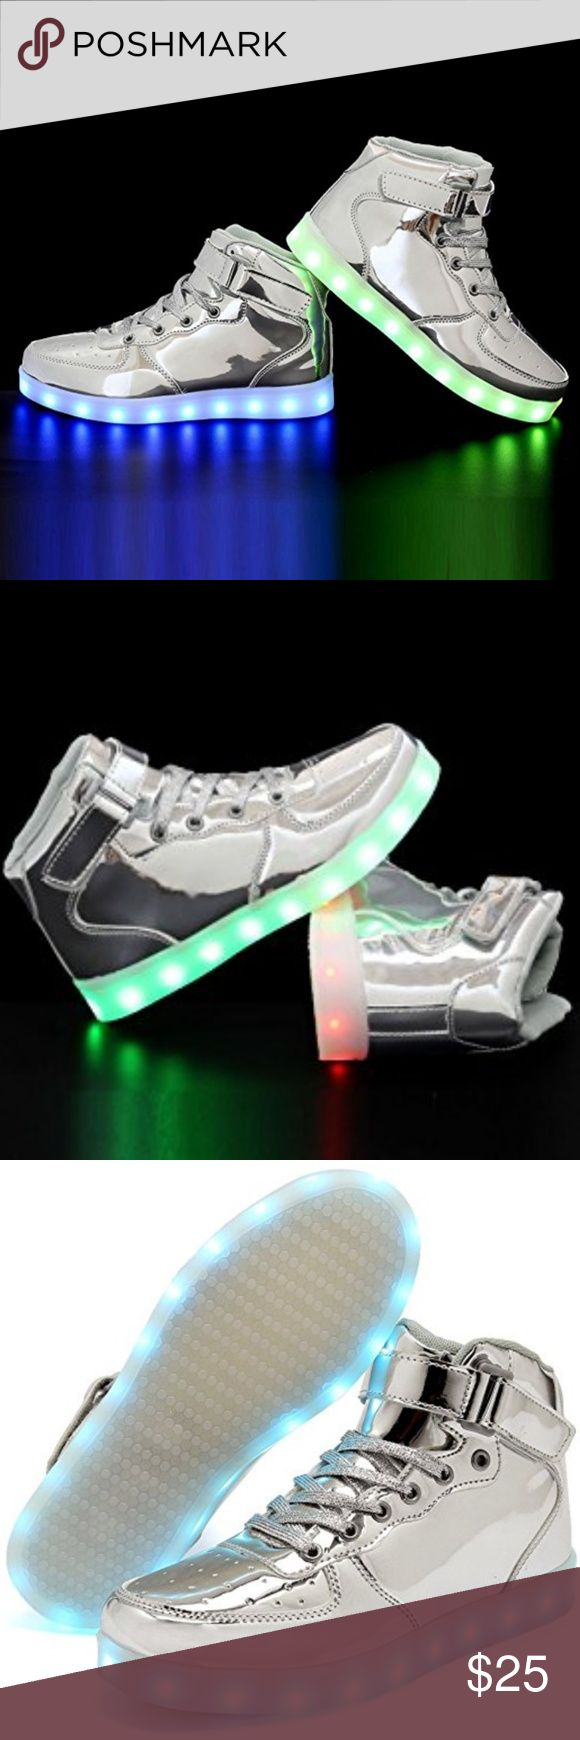 Cior LED Sneakers in Silver Sz. 8 Brand New Unworn PU leather and rubber. SWITCH INSTRUCTION: Hidden switch by the charging port. Press it to switch on.It starts with steady red light.With each press,it changes to another light mode. Press the switch for 12 times to turn the light off.  CHARGE INSTRUCTION: Charge with a USB cable. Switch on the shoes when received and light up until all power gone. Charge for 3 hr Not to use as running shoes or other strong sports. They are suited for casual…